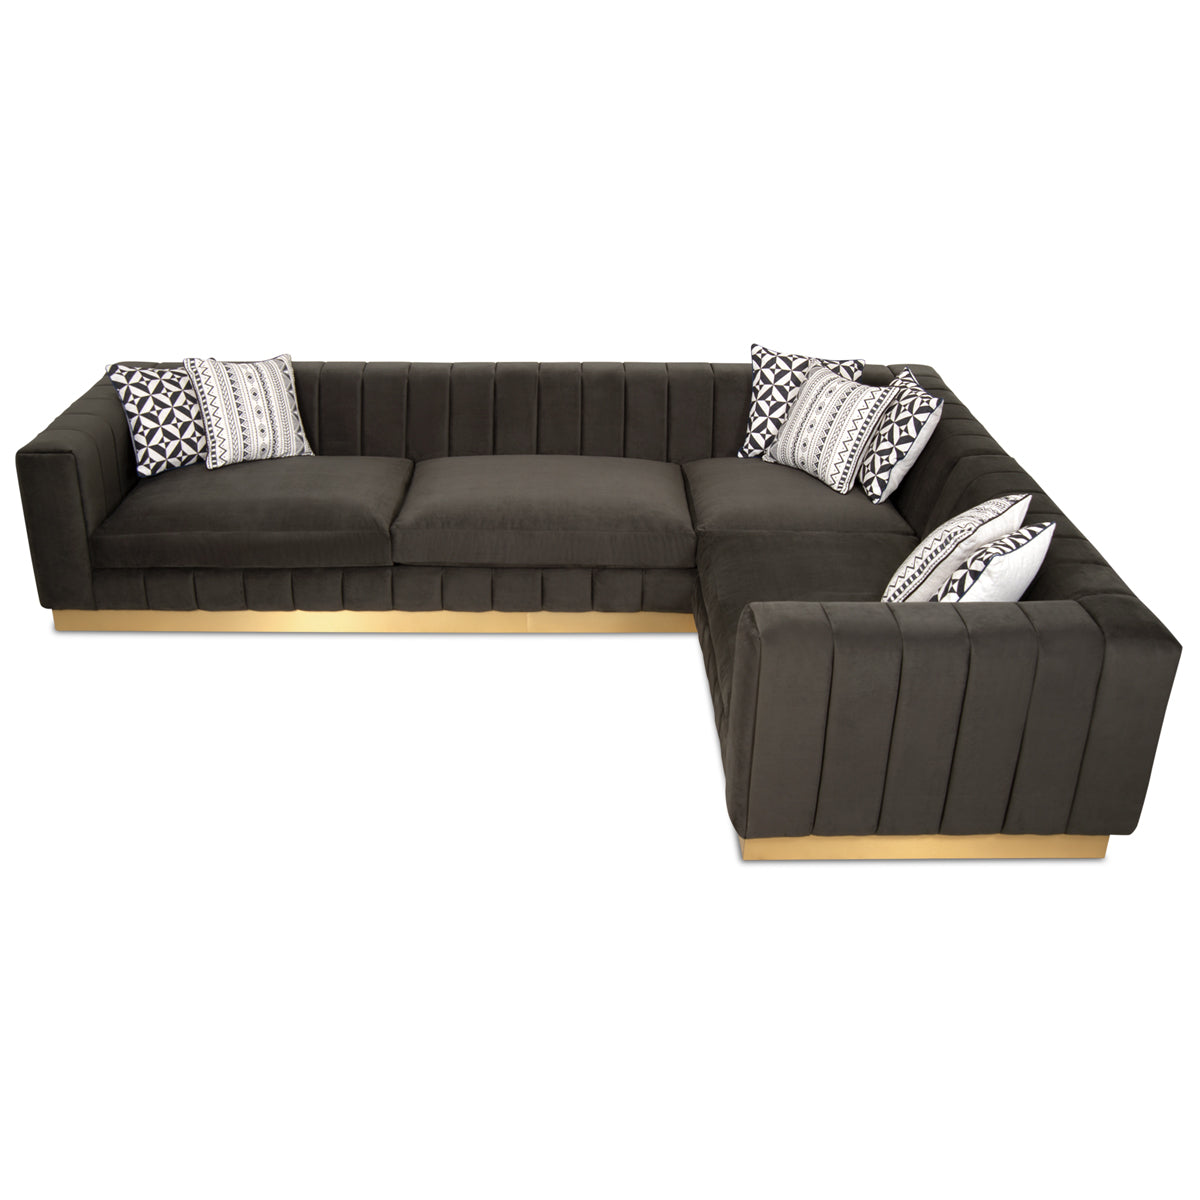 Inside Out Monaco Sectional - ModShop1.com